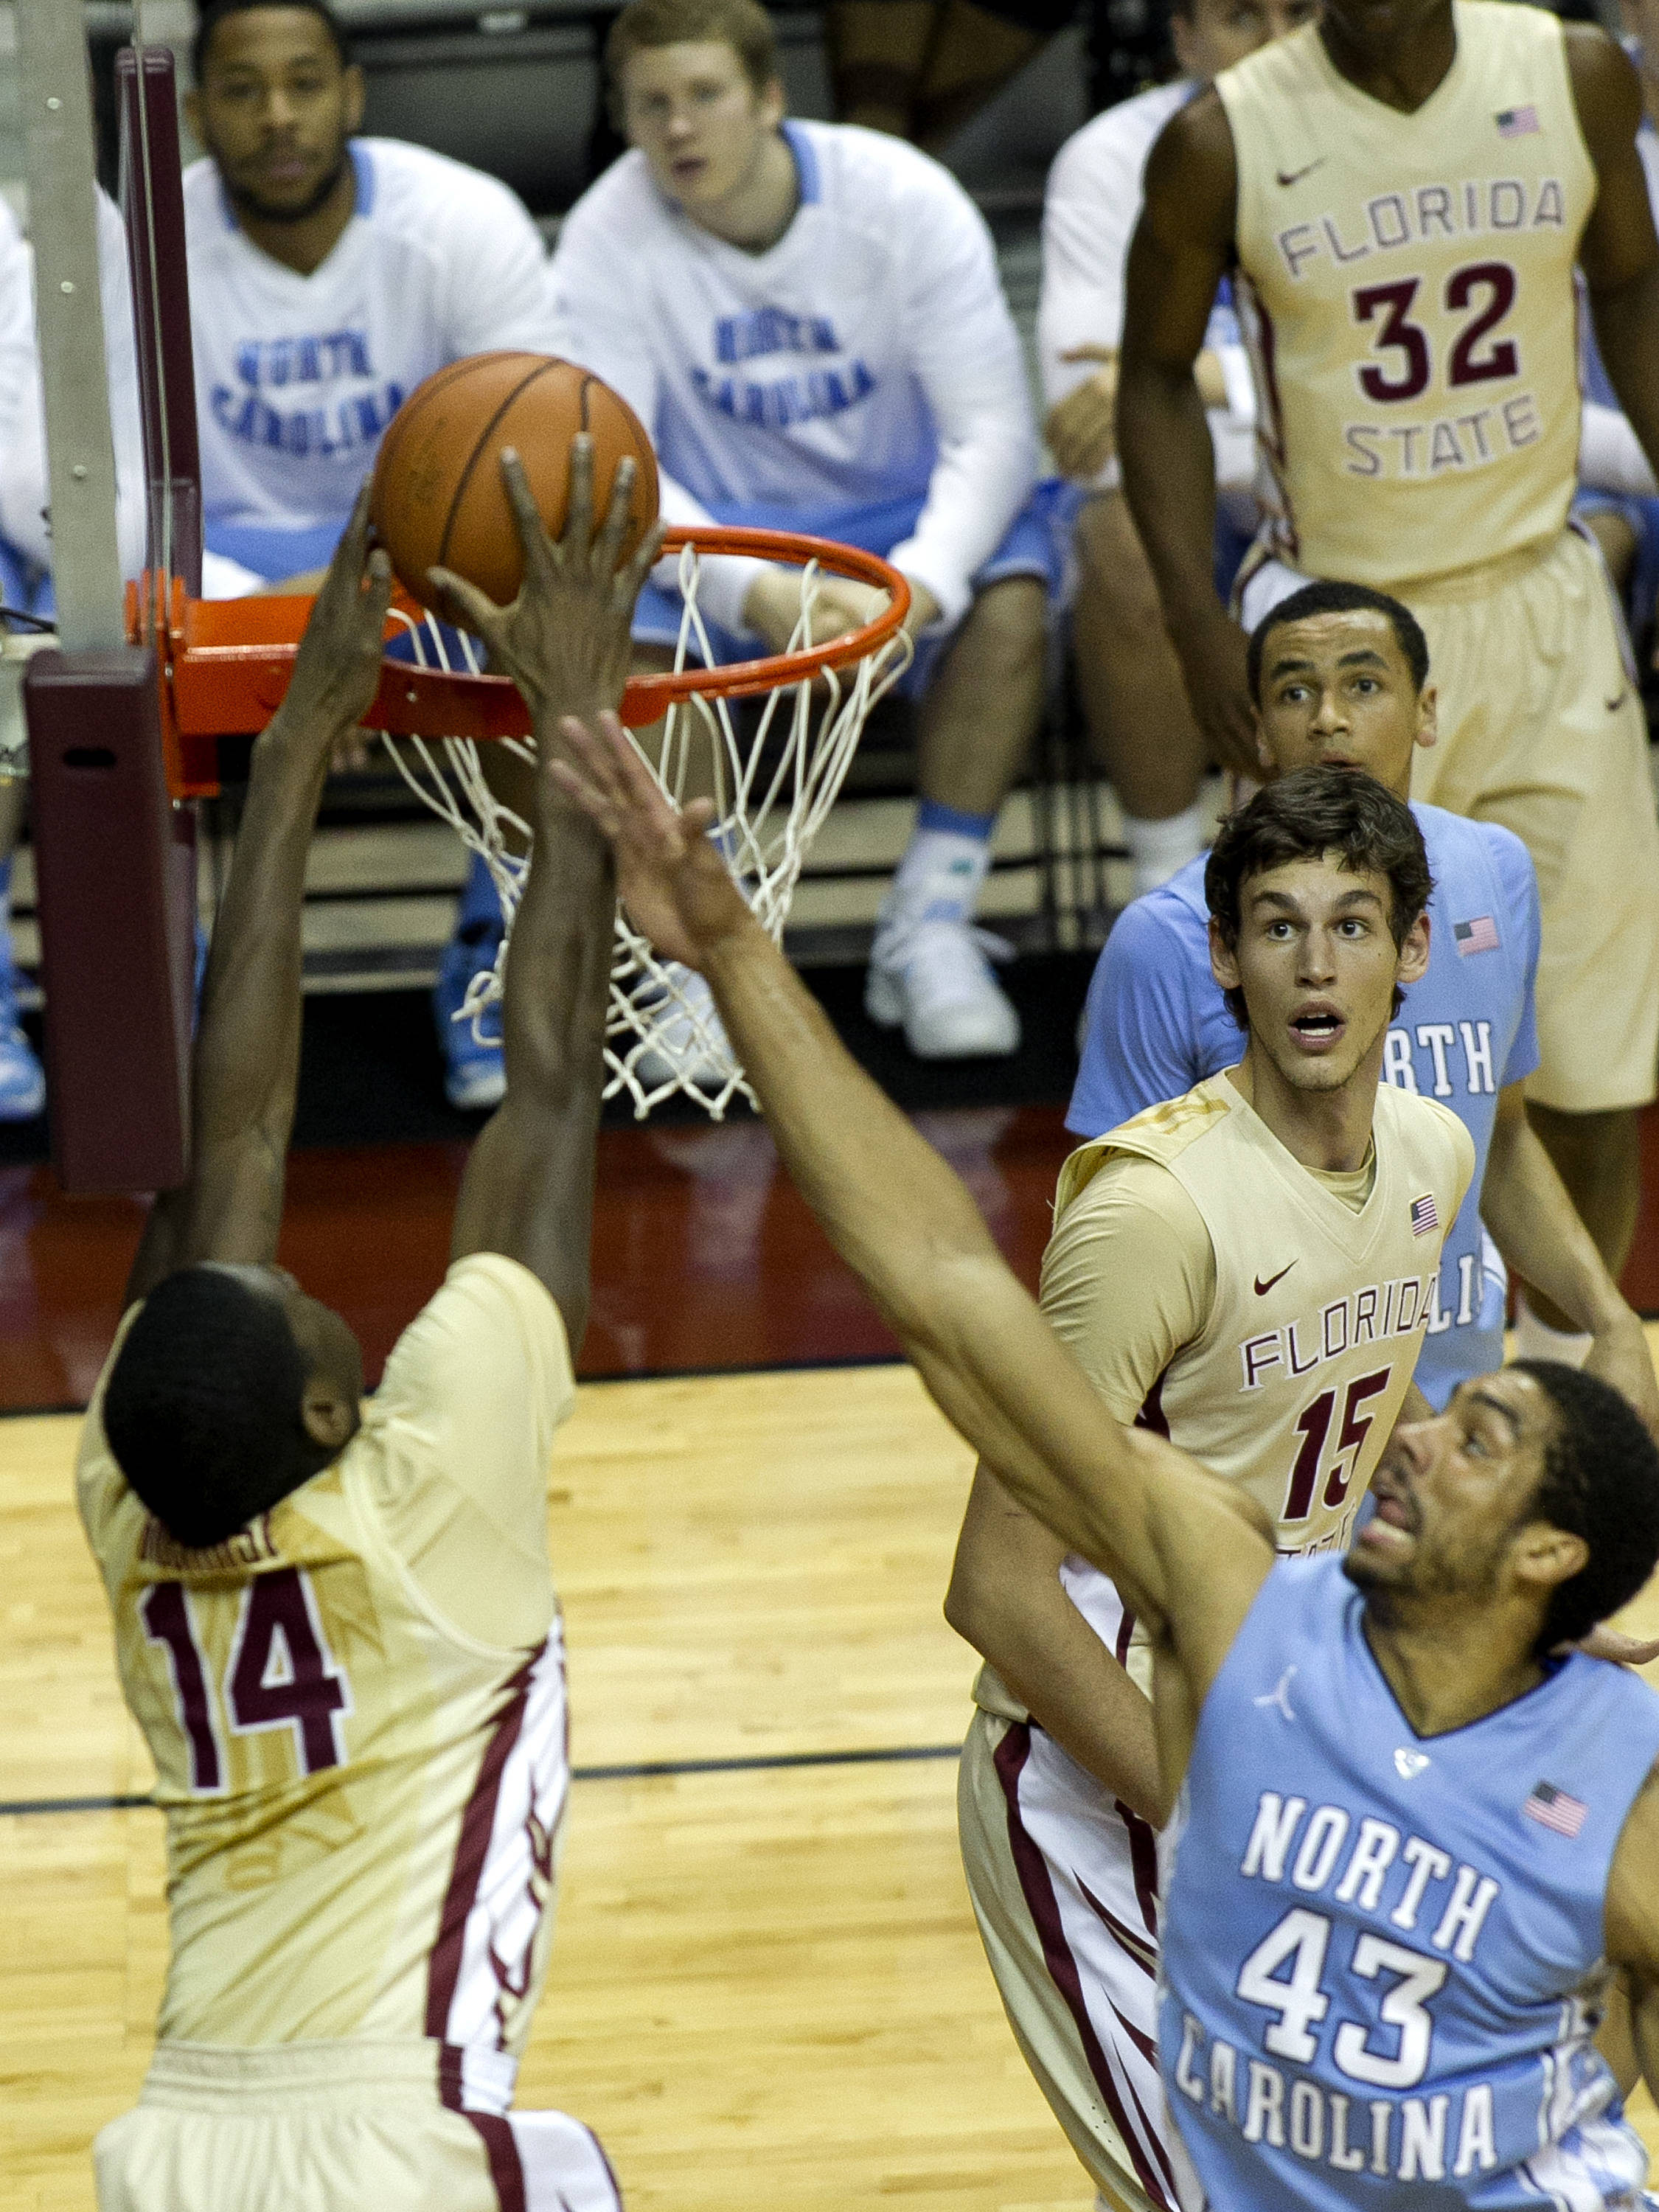 Robert Gilchrist (14) with a jam from a lob pass from Ian Miller(30), FSU vs North Carolina, 2-17-14, (Photo's by Steve Musco)